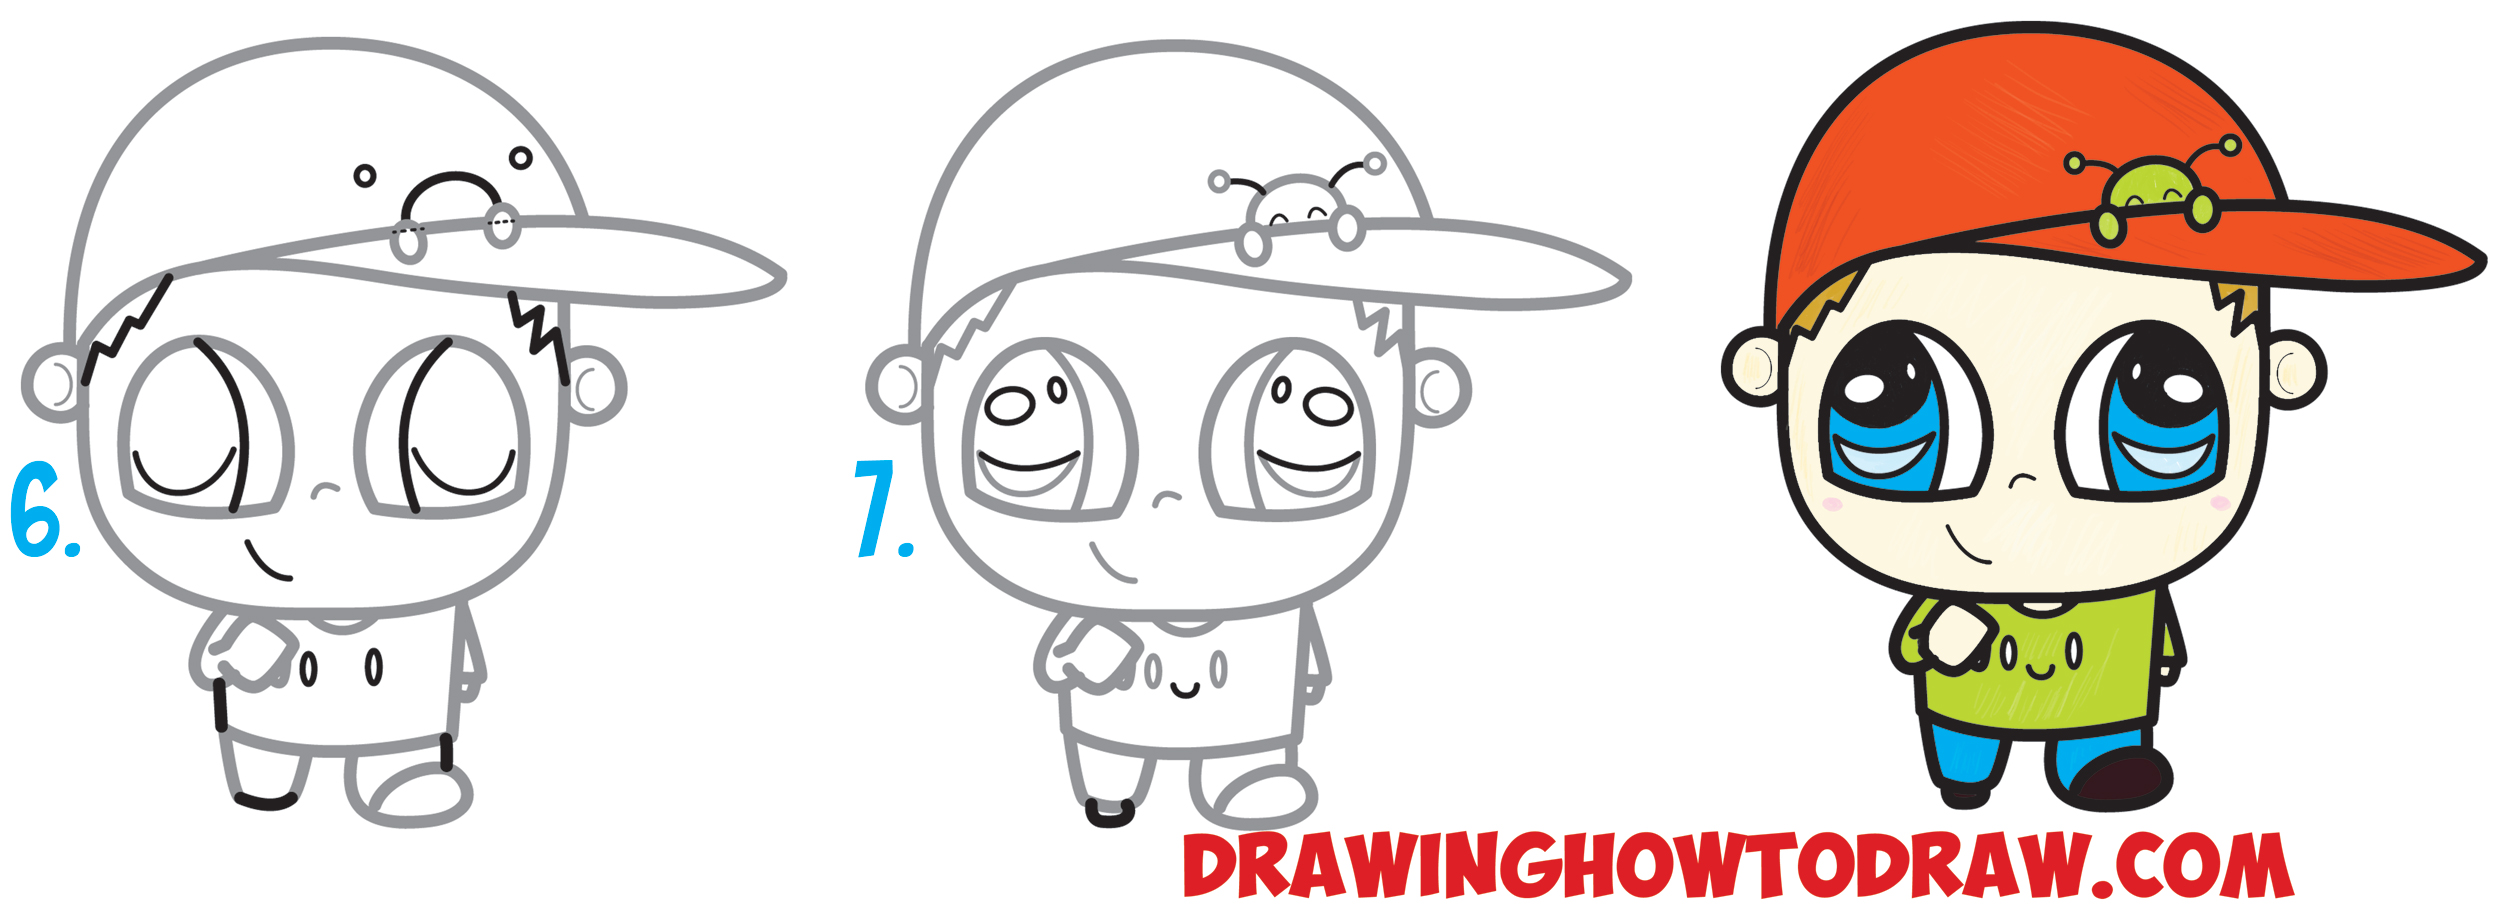 2500x914 How To Draw A Chibi Boy With A Cute Bug On His Baseball Hat Easy